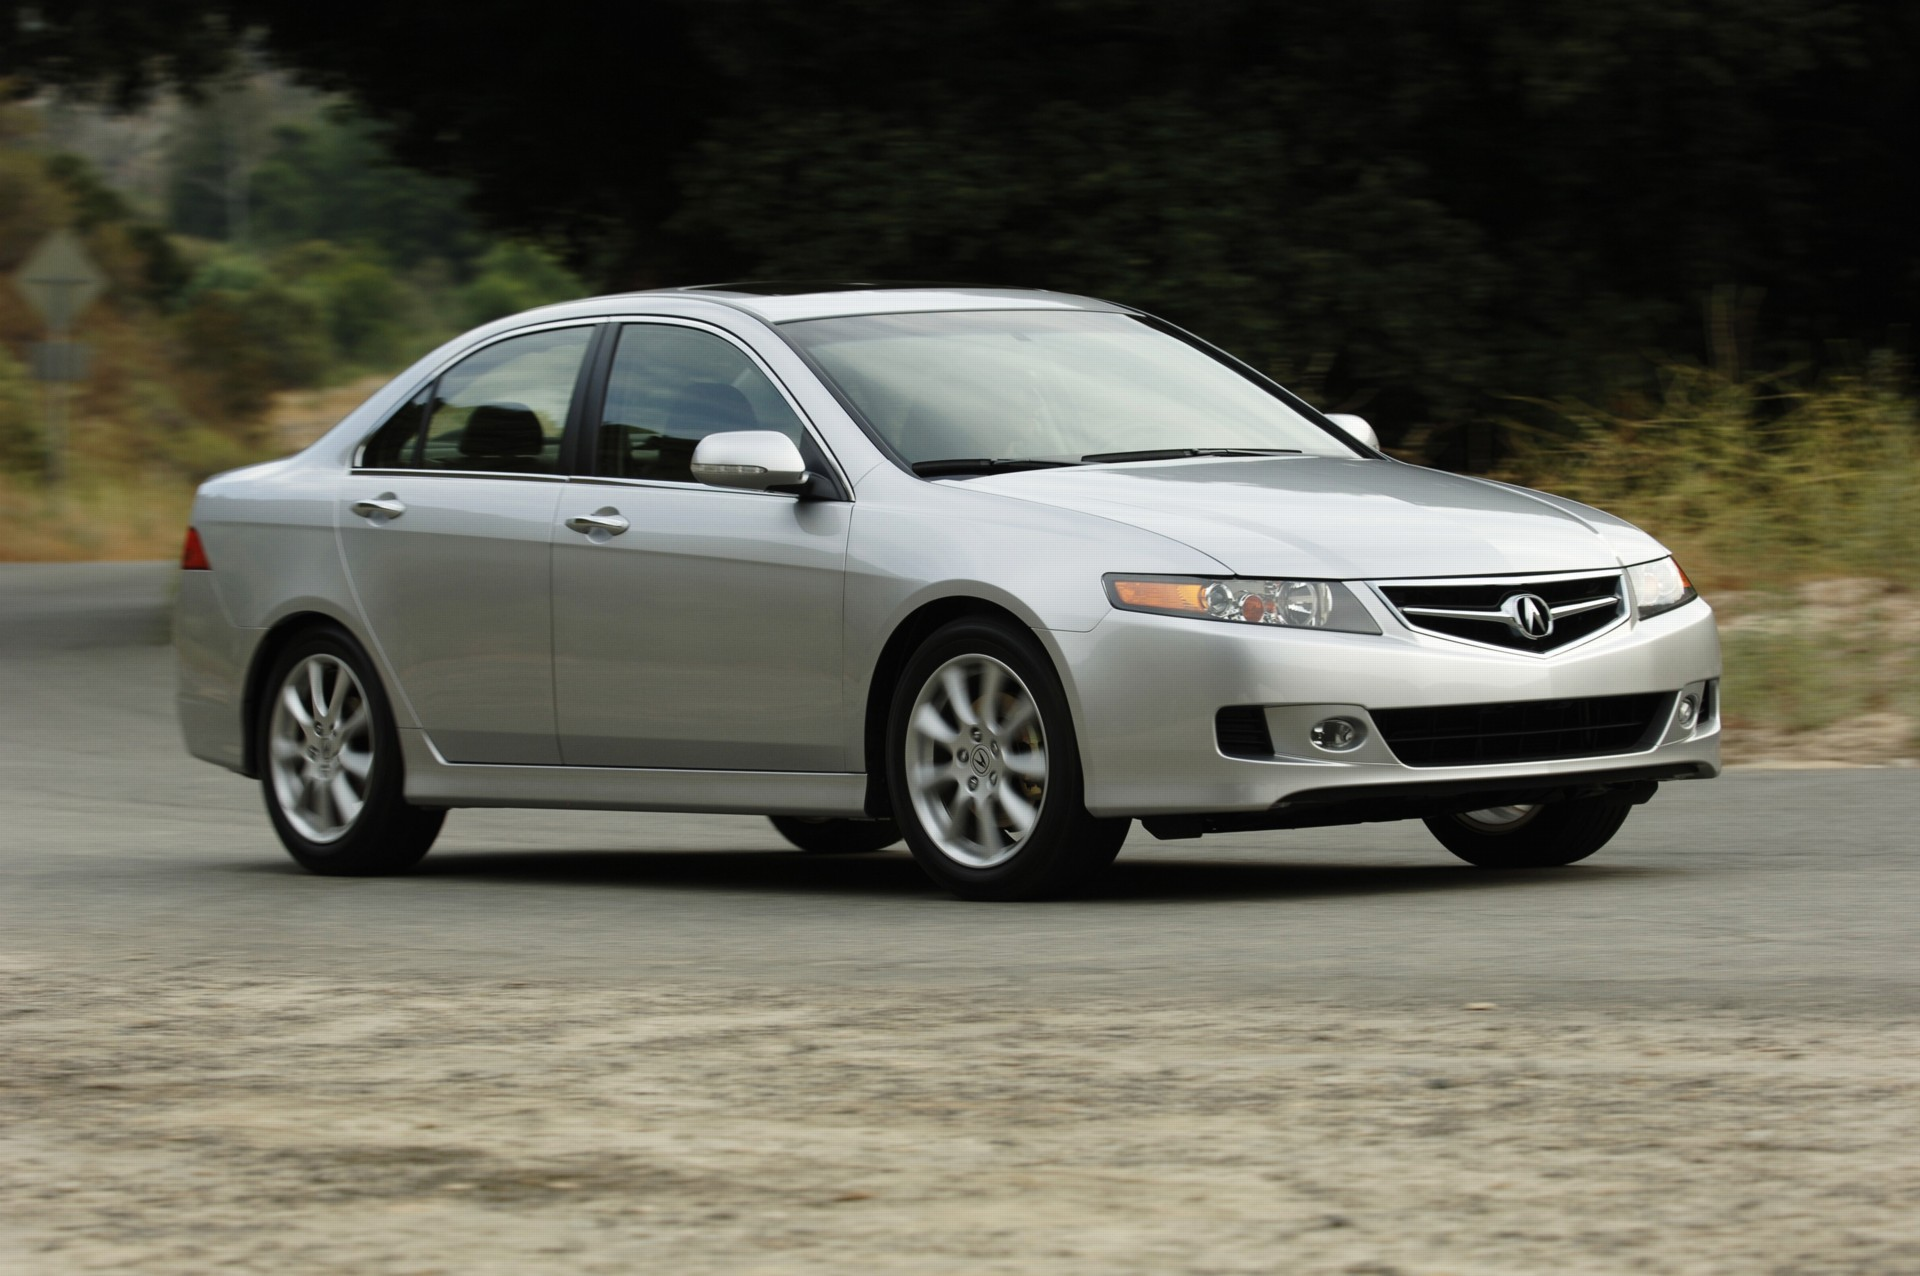 2007 Acura Tsx Wallpaper And Image Gallery Conceptcarz Com